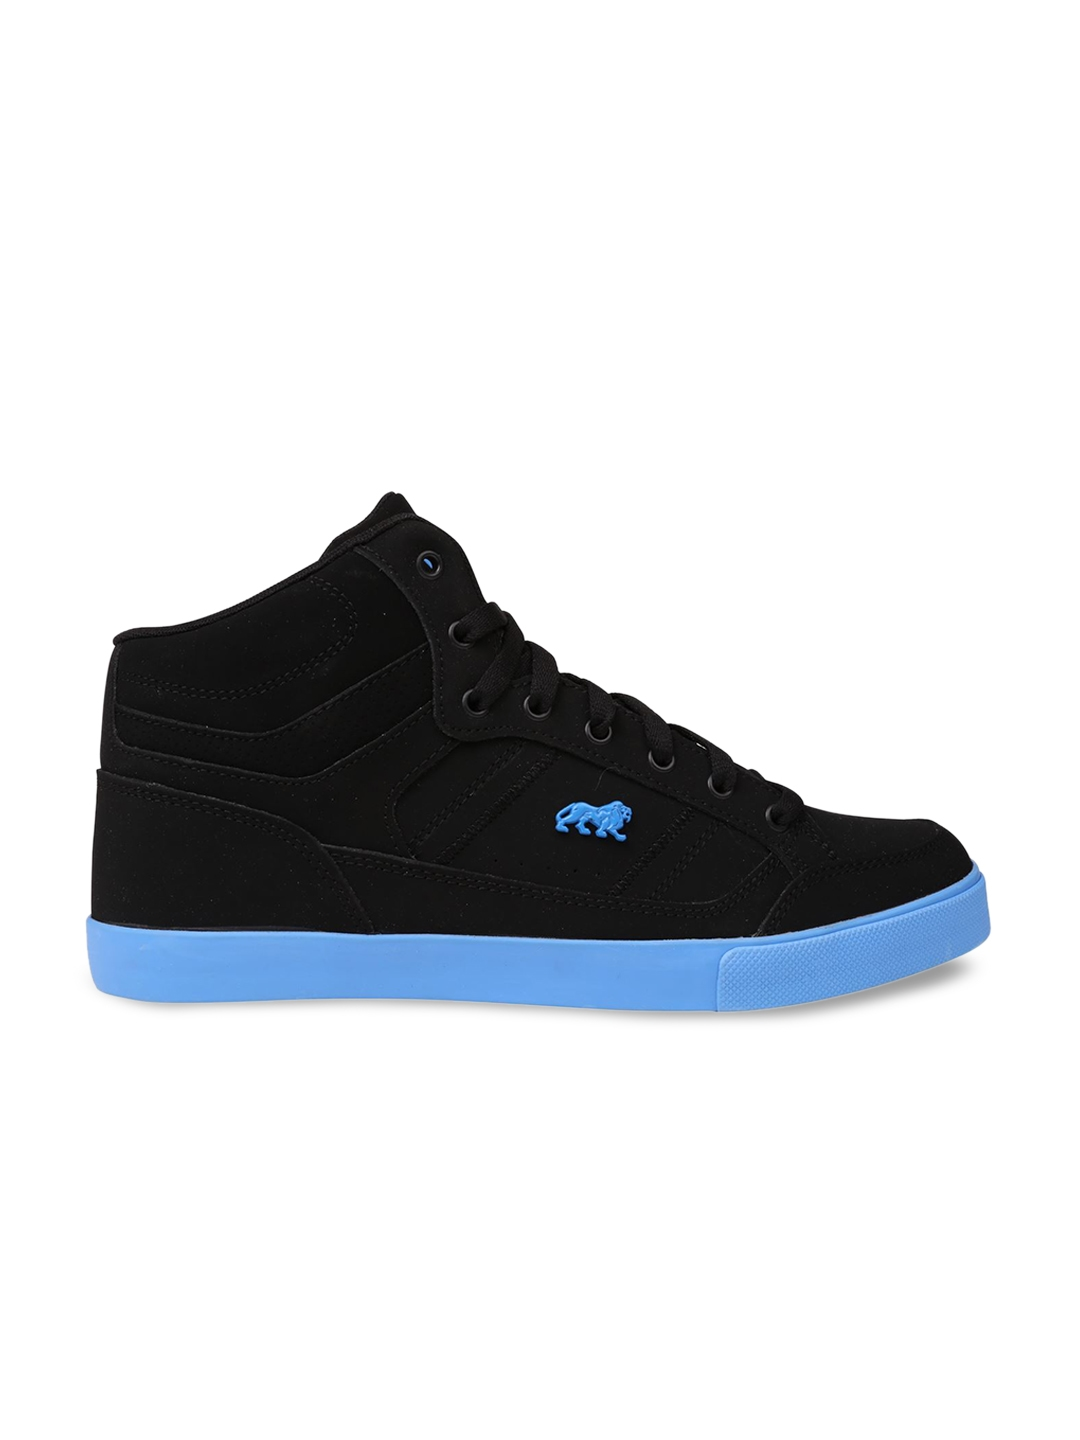 40ecda0a98a9 Buy Lonsdale Men Black And Blue Leather High Top Training Or Gym ...